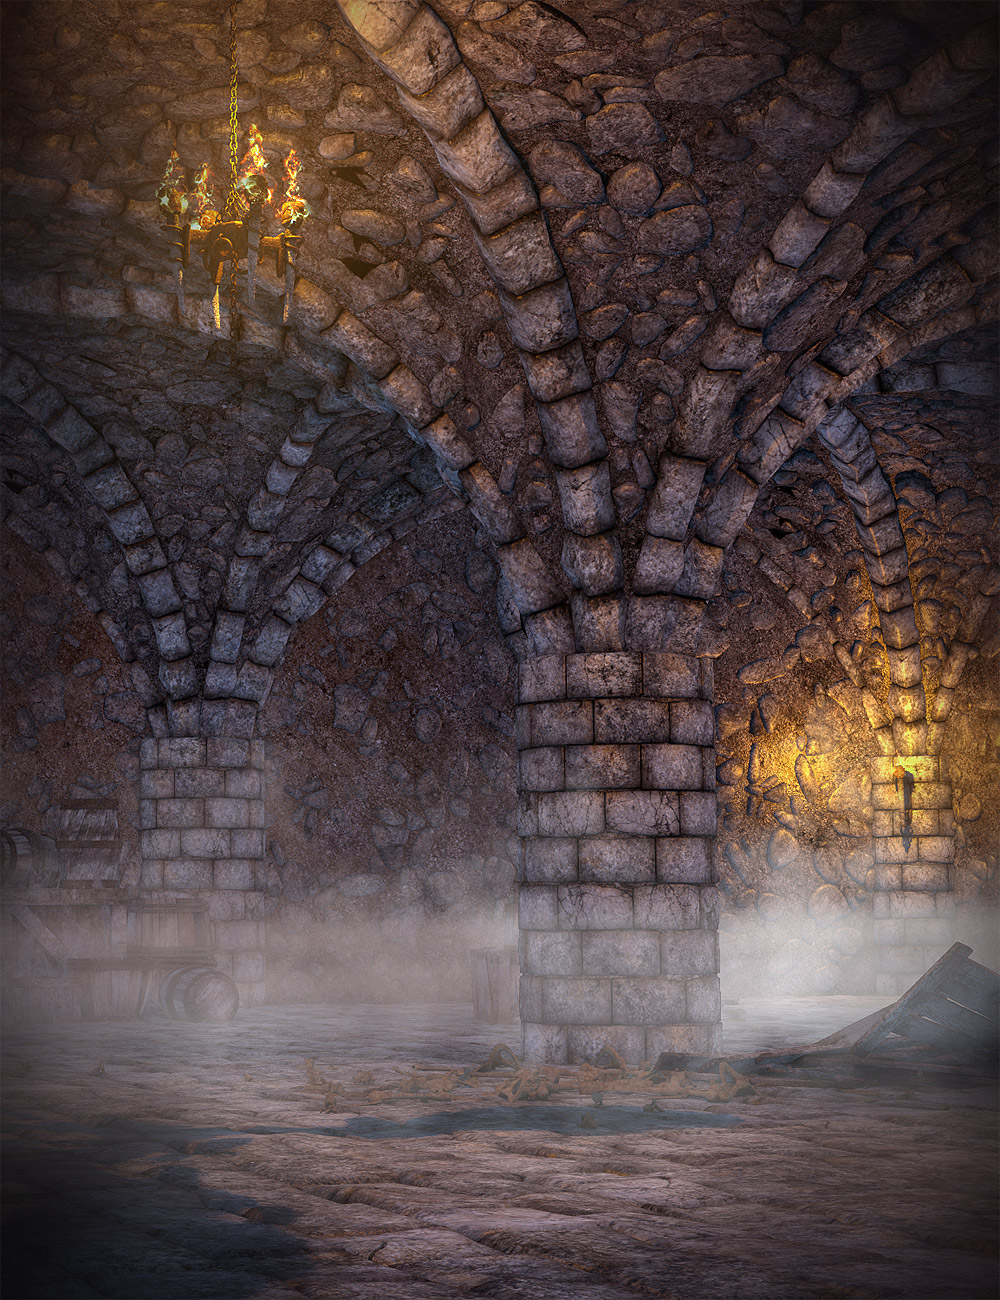 The Vaults by: Orestes Graphics, 3D Models by Daz 3D